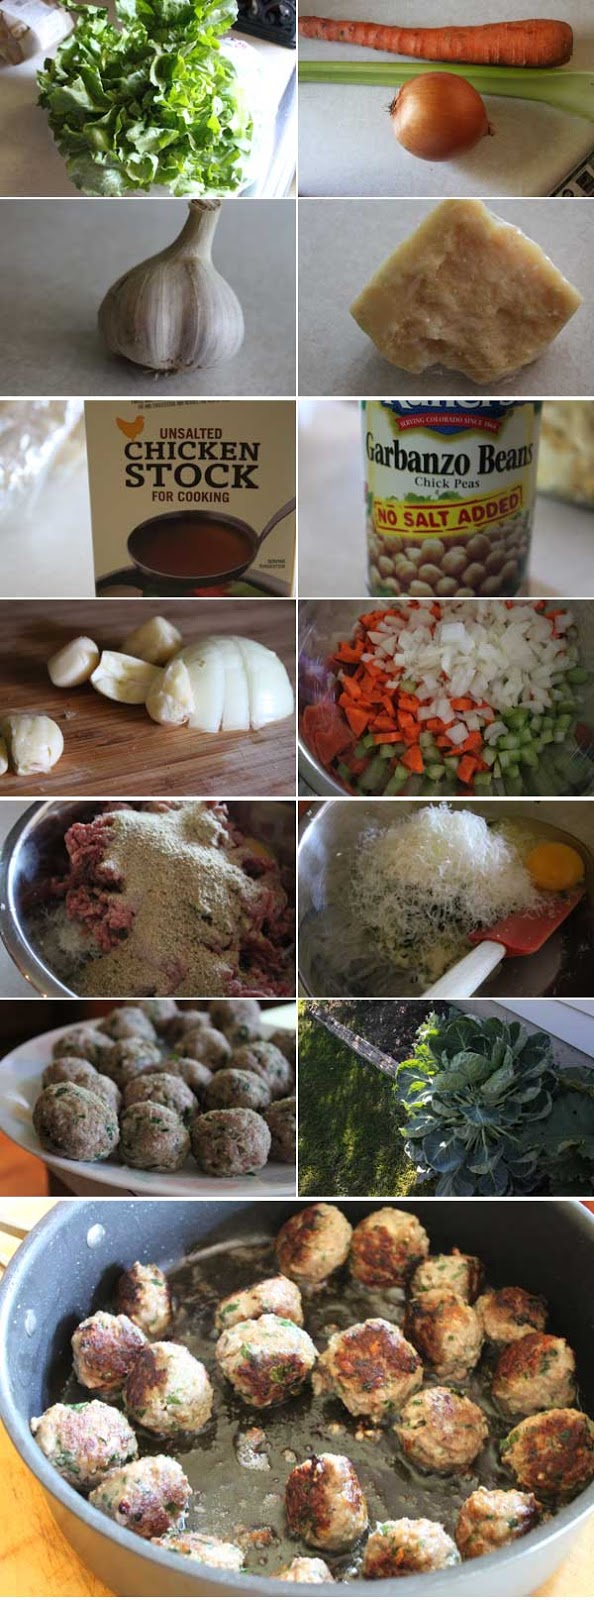 Ingredients for Italian Wedding Soup Ingredients